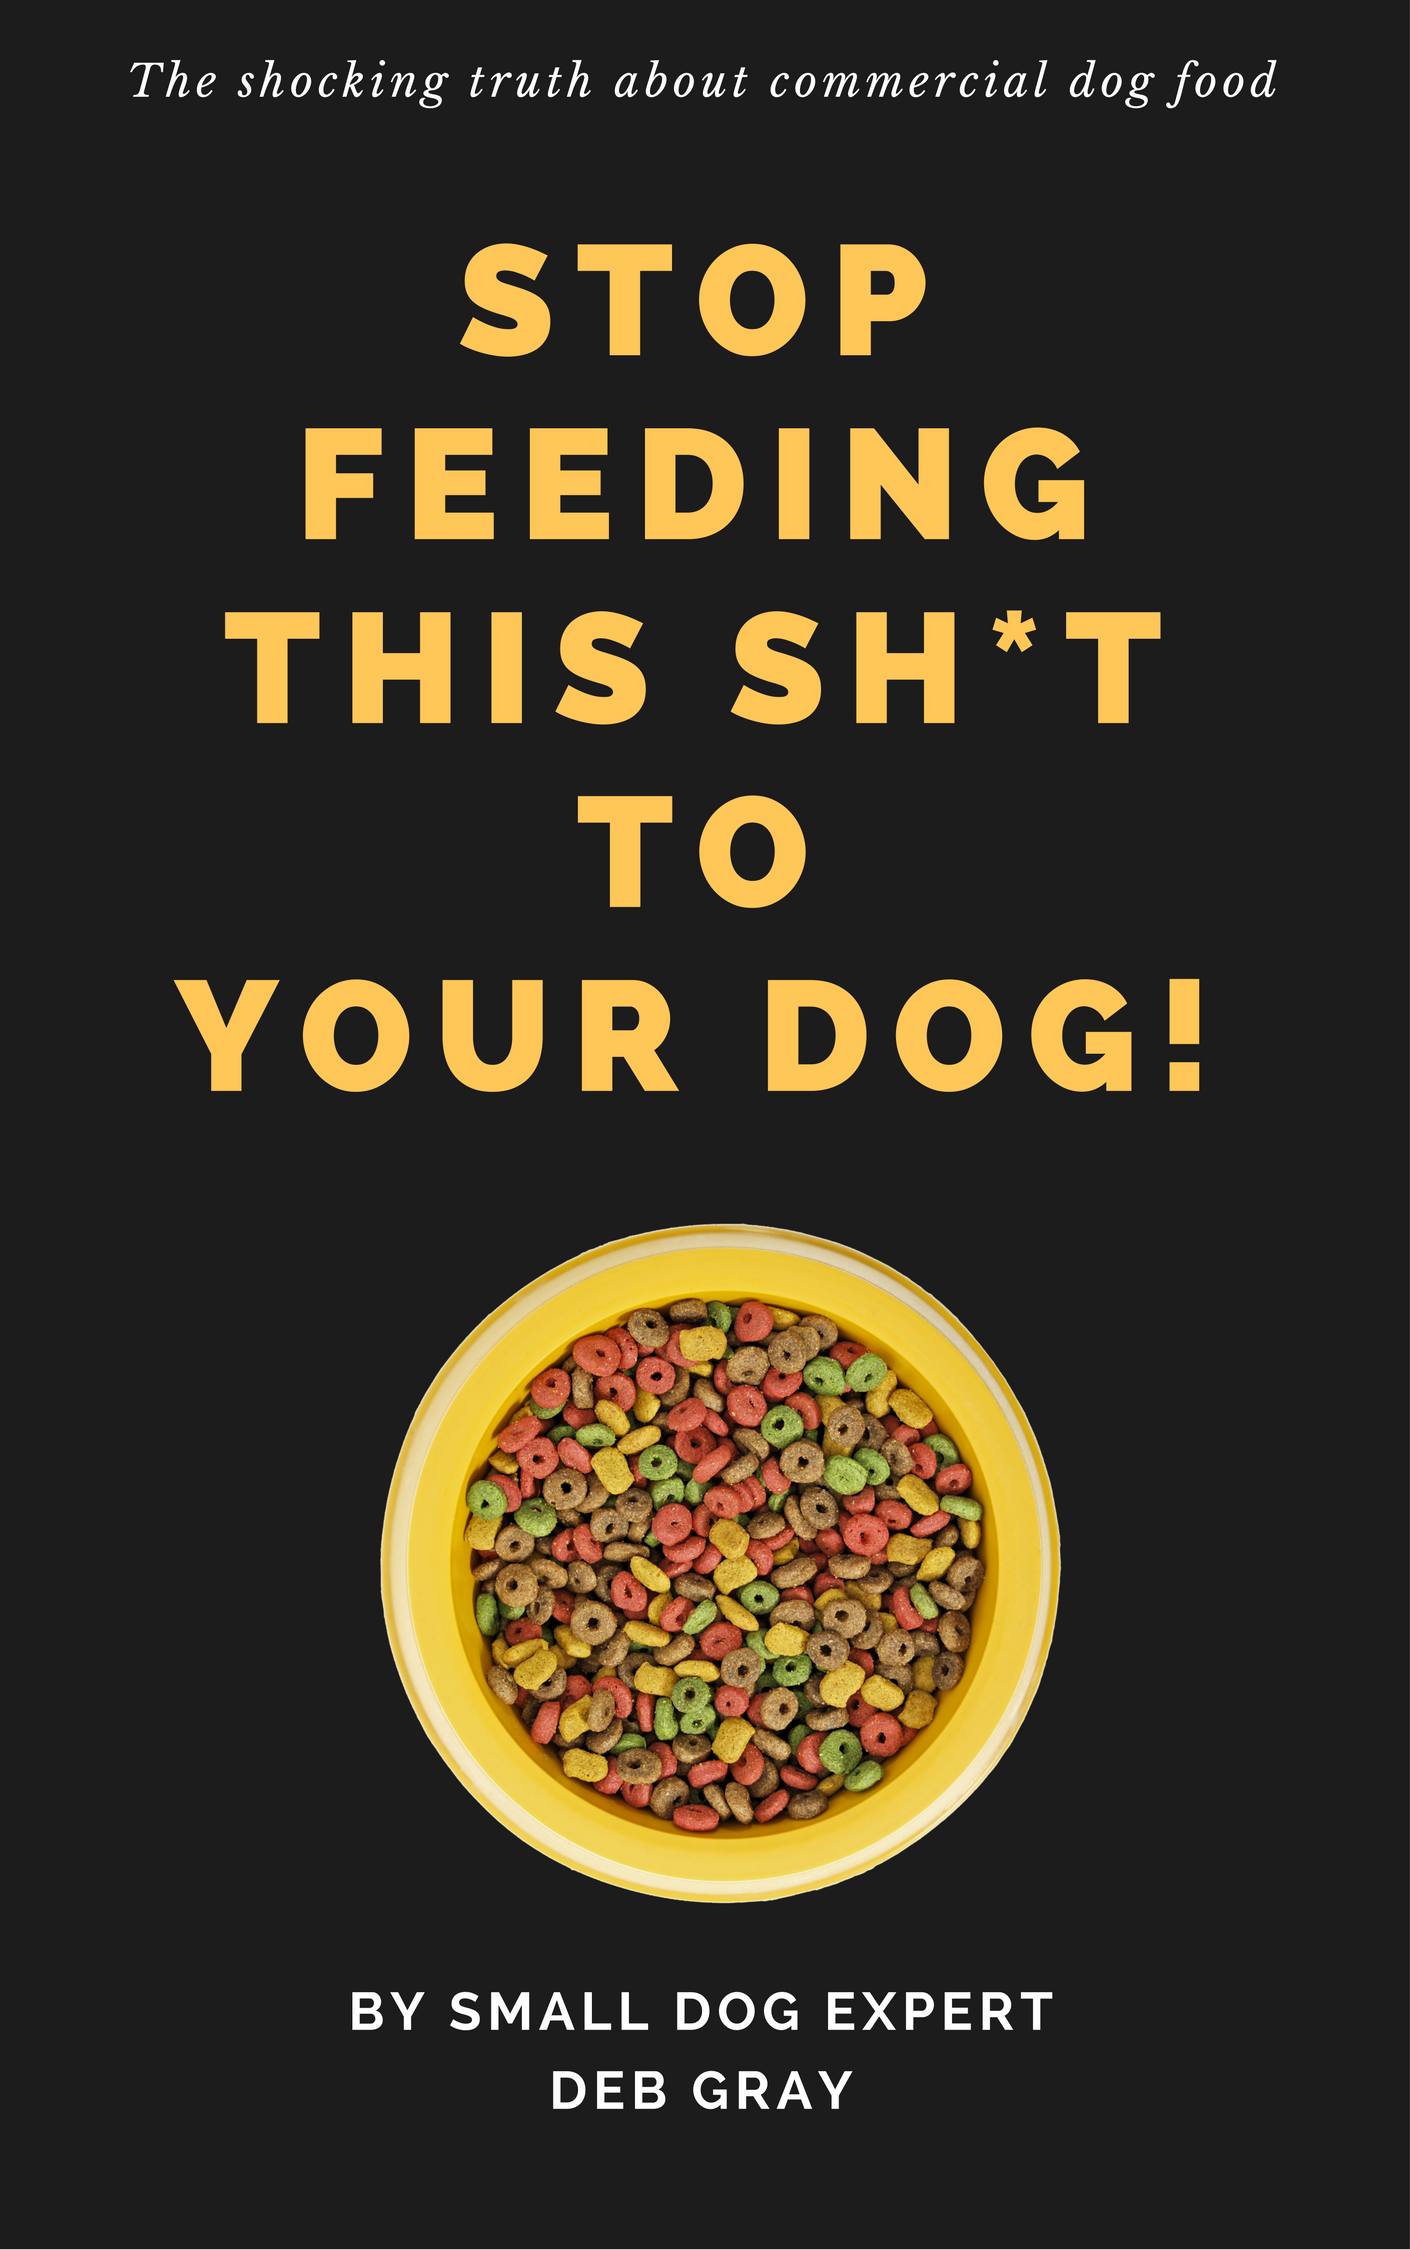 Stop feeding